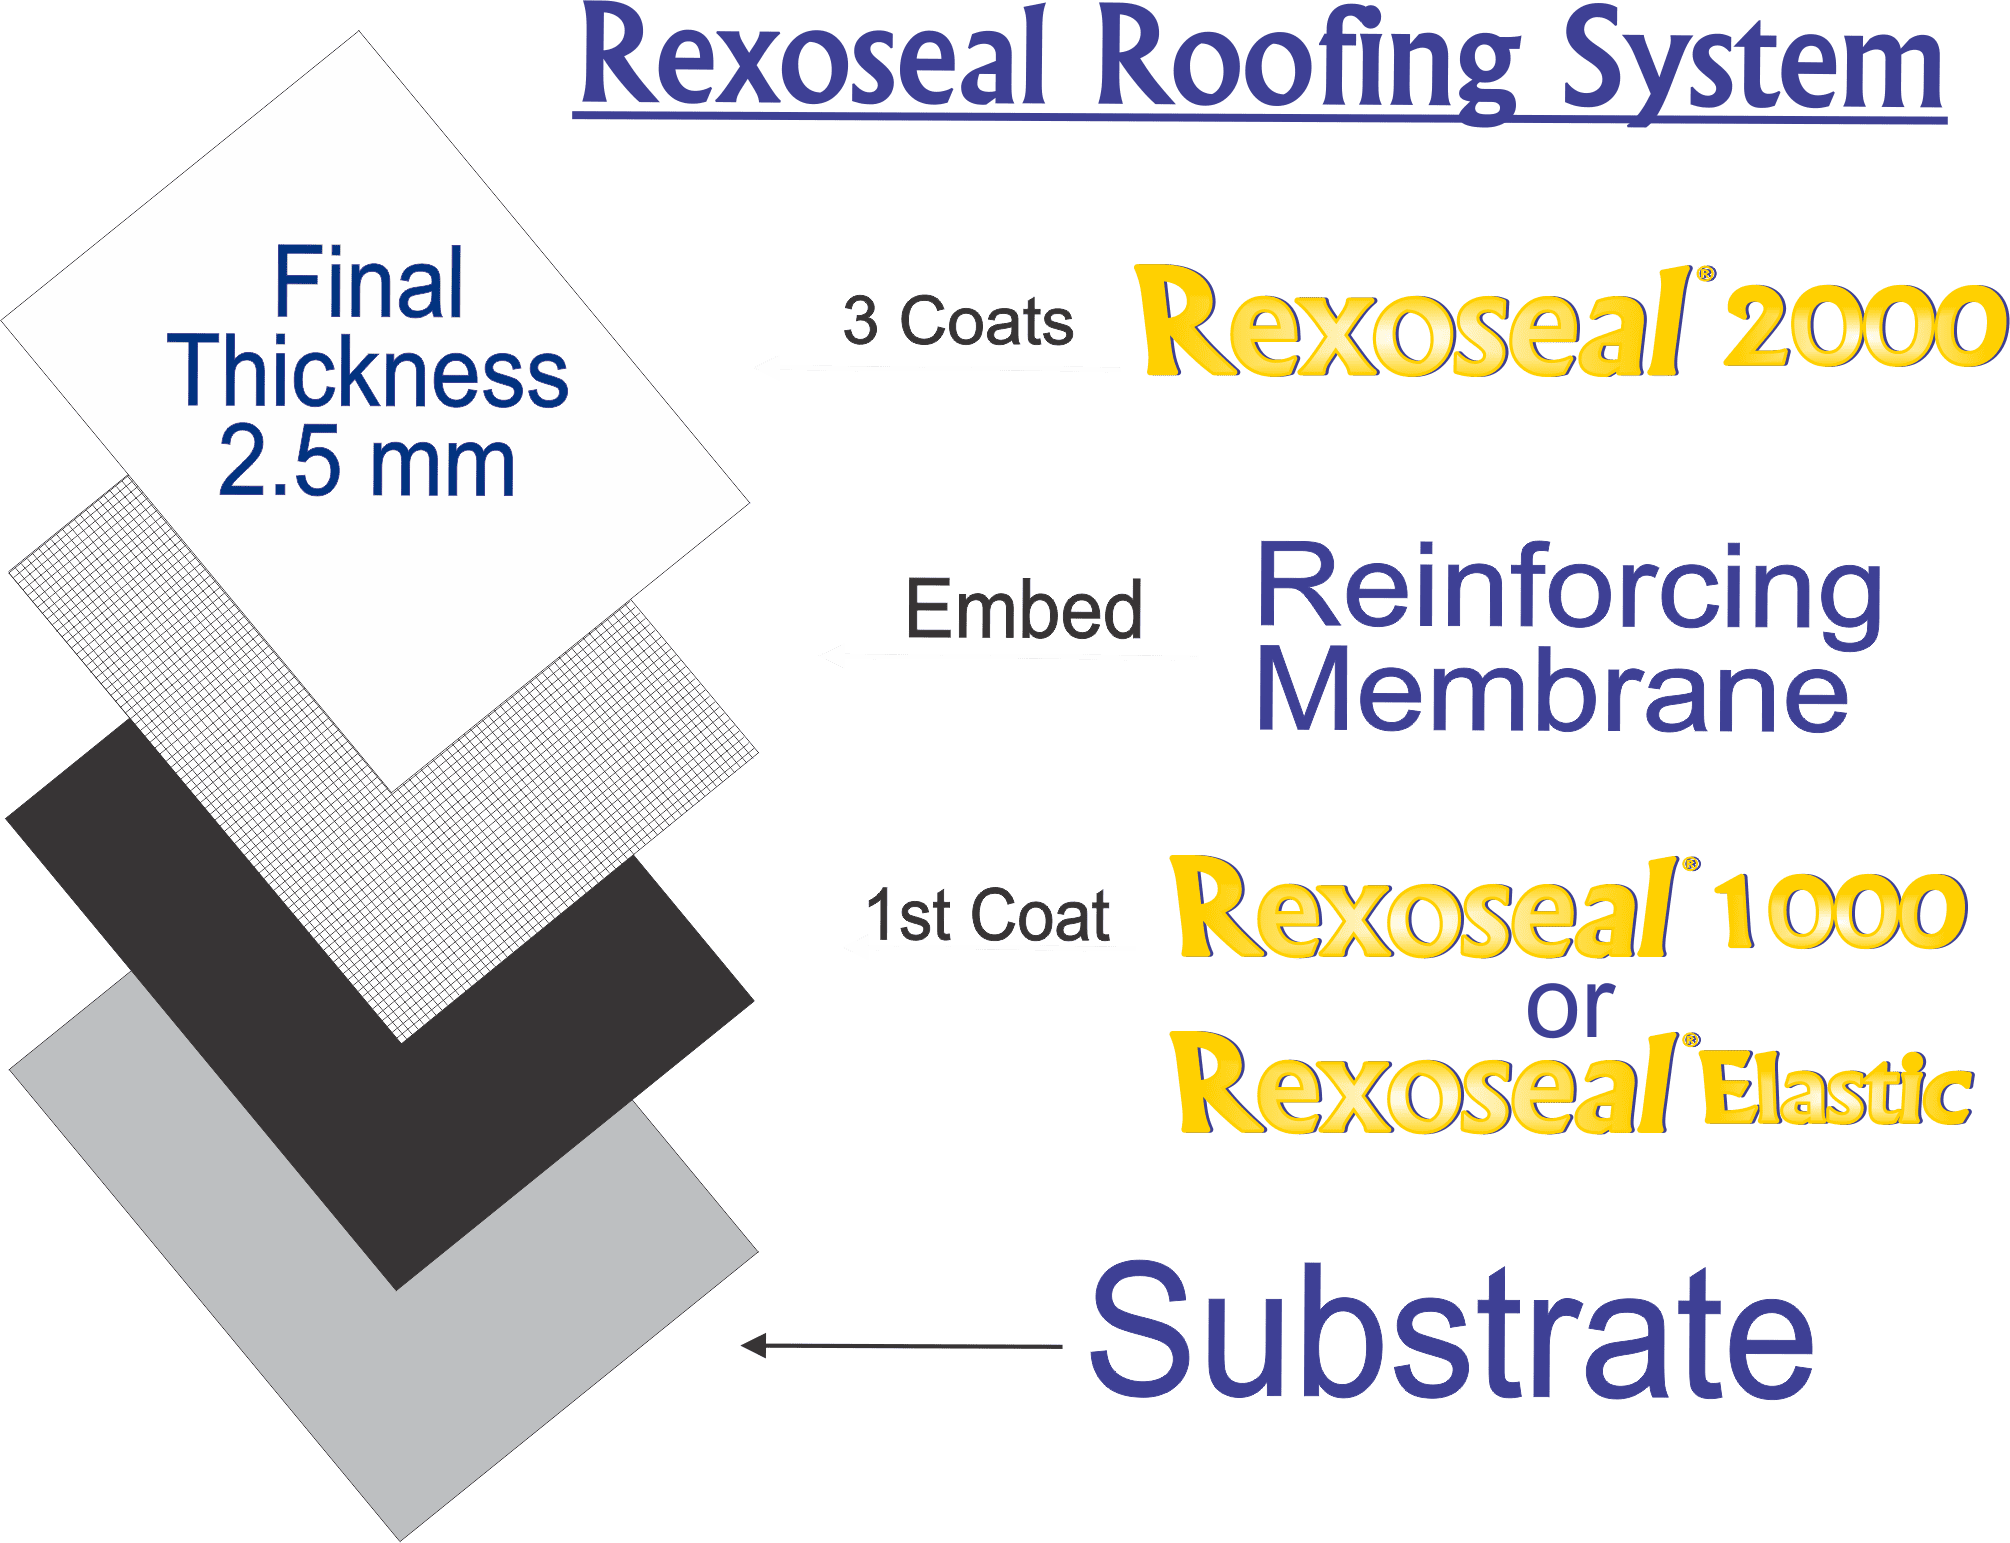 Rexoseal Roofing System Diagram